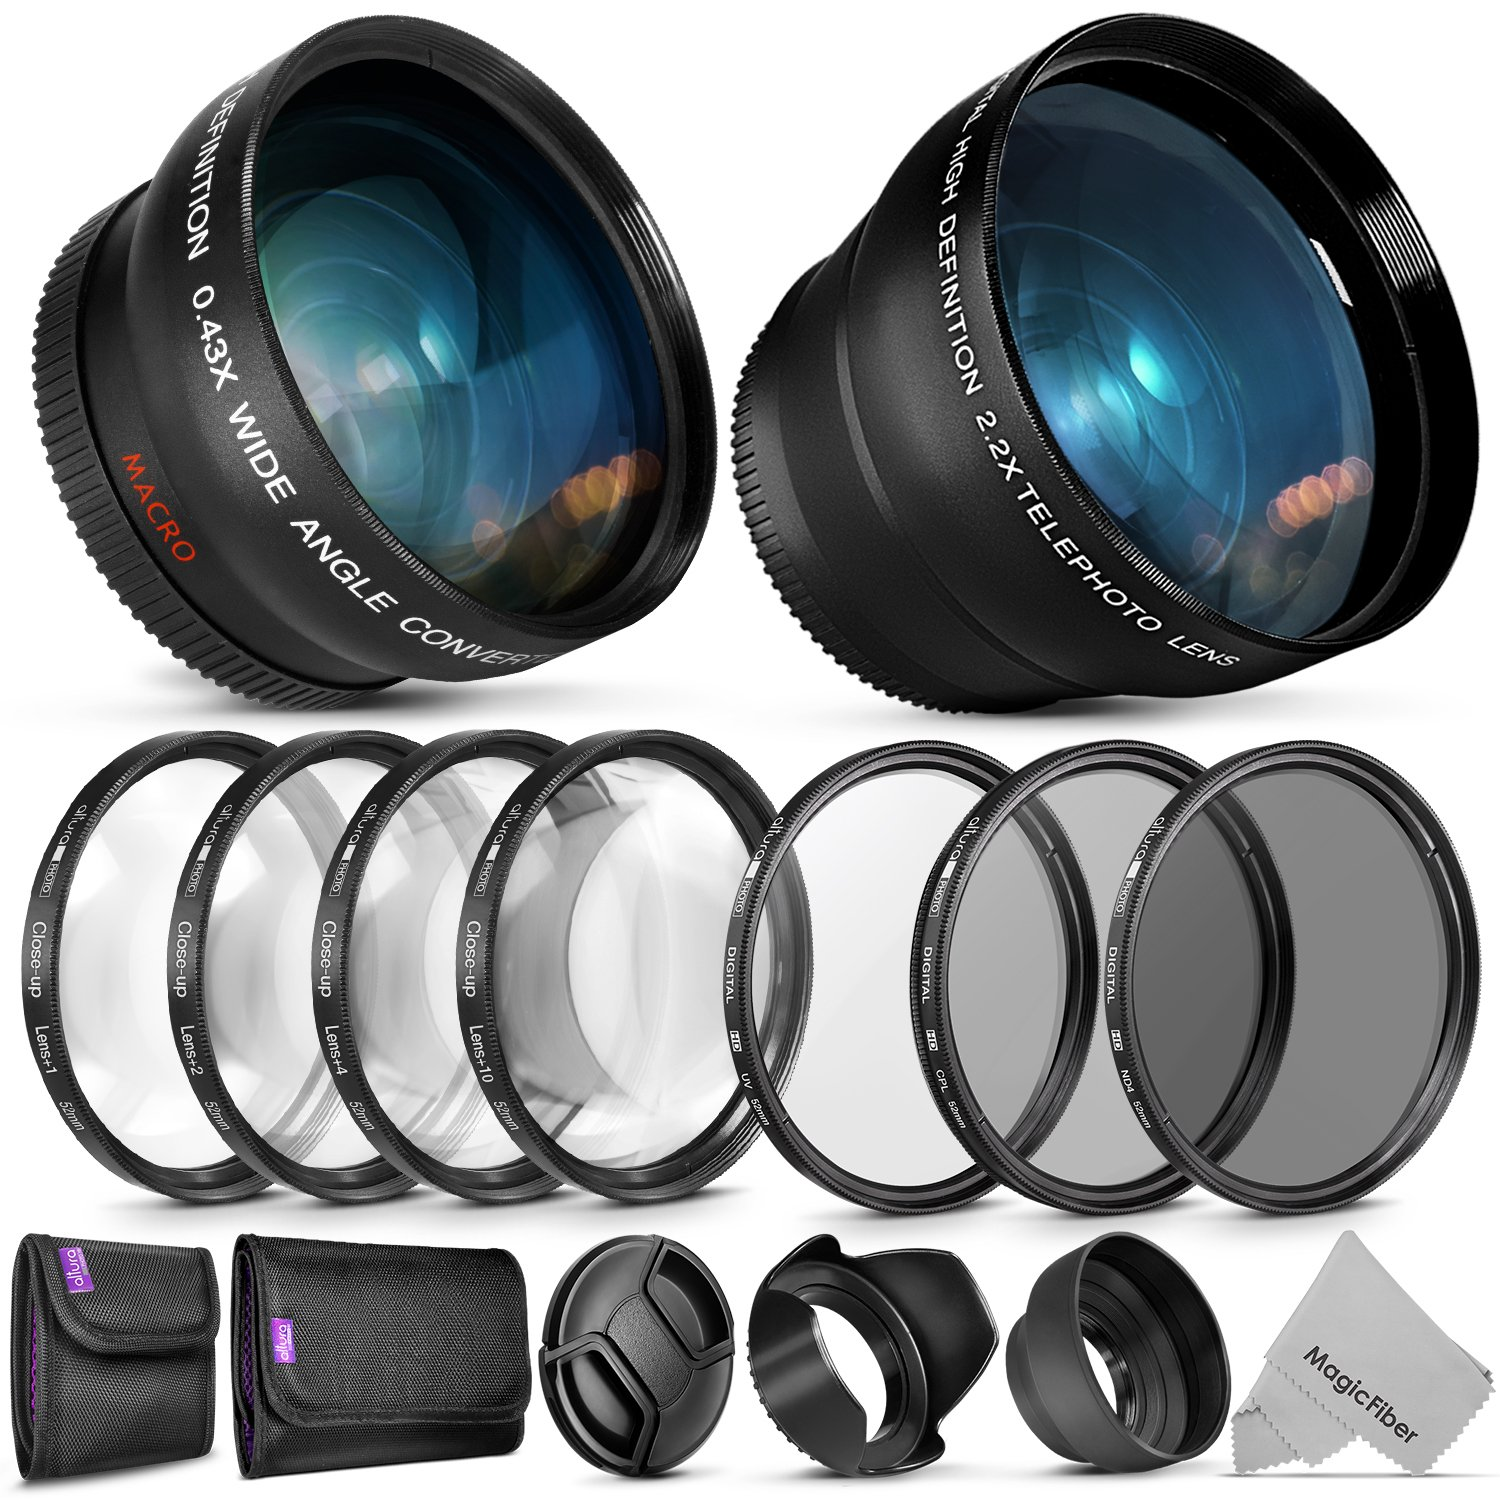 52mm Starter Accessory Kit for Nikon DSLR Bundle with Vivitar Wide Angle and Telephoto Lenses